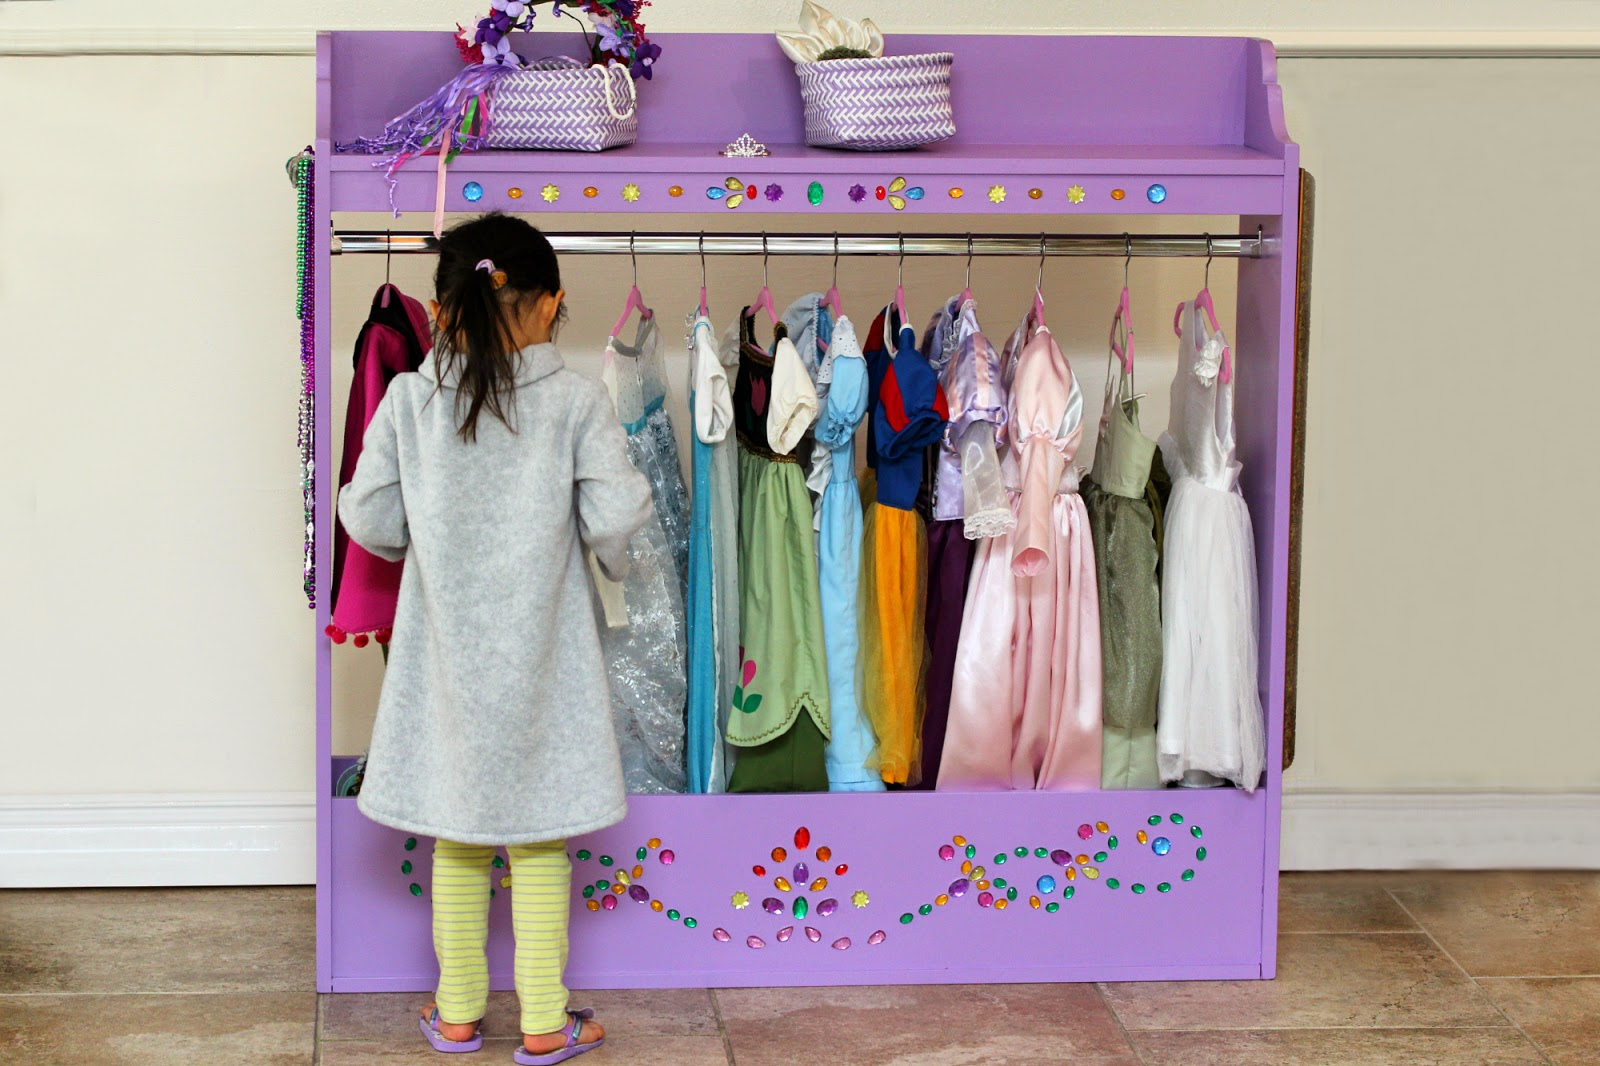 With Momos Princess Dress Collection Expanding I Needed A Storage Solution They Were Taking Up Closet Space And Not Really Easy For Momo To Access